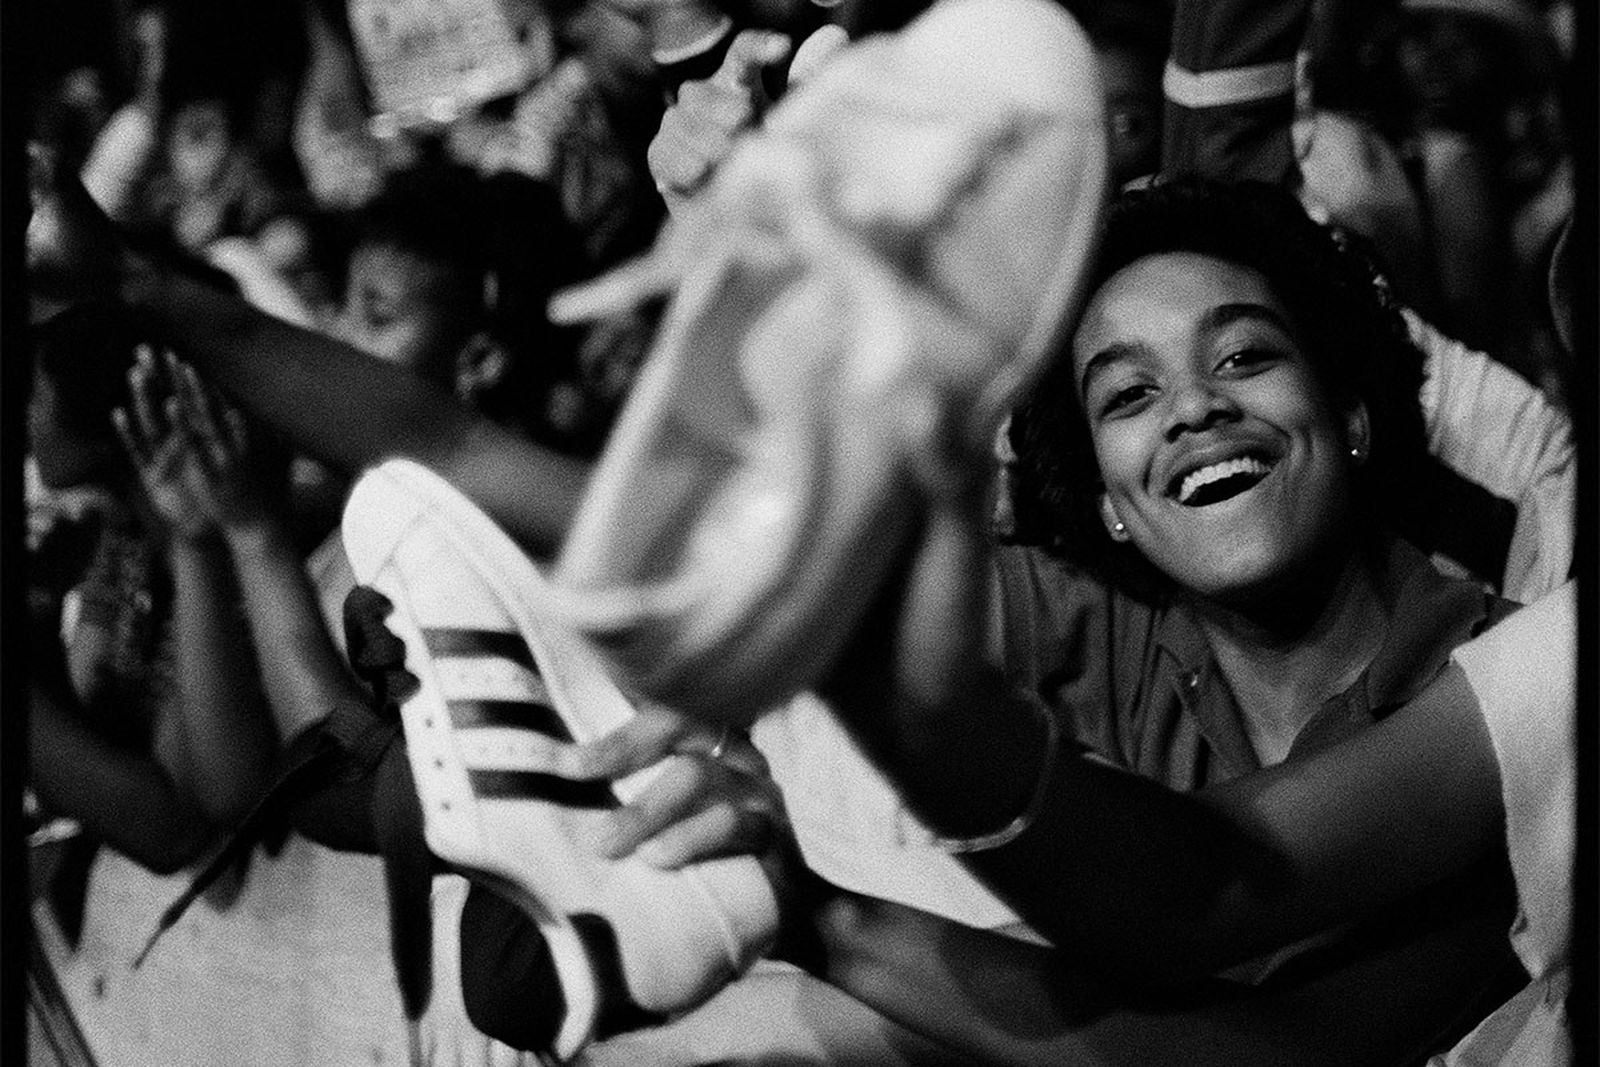 A fan proudly waves his adidas Superstars in the air at a Run-DMC concert.